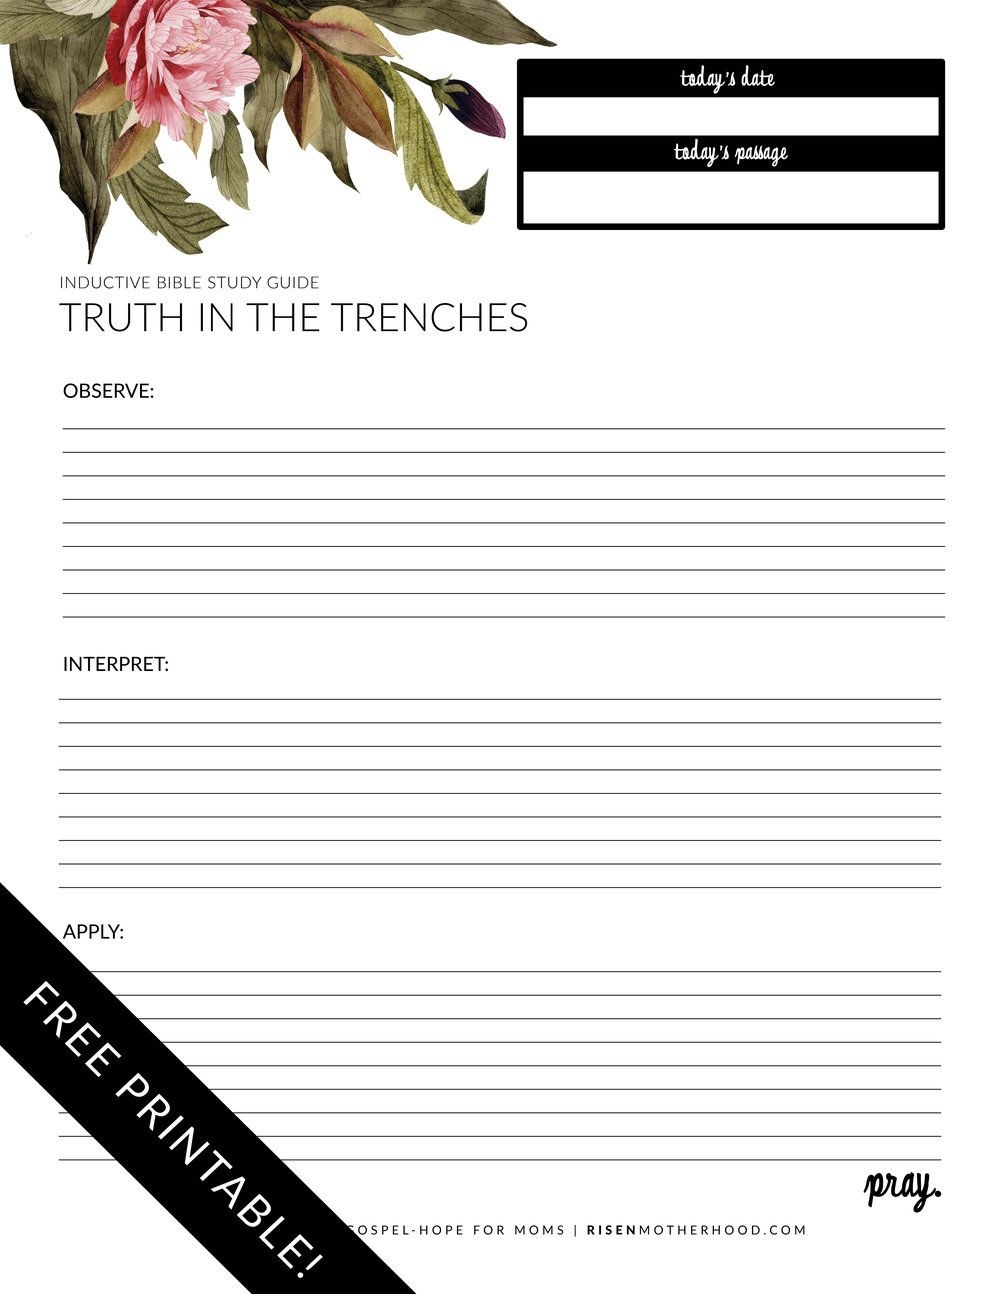 Free Printable: Inductive Bible Study Worksheets & Companion Card - Free Printable Bible Study Lessons With Questions And Answers